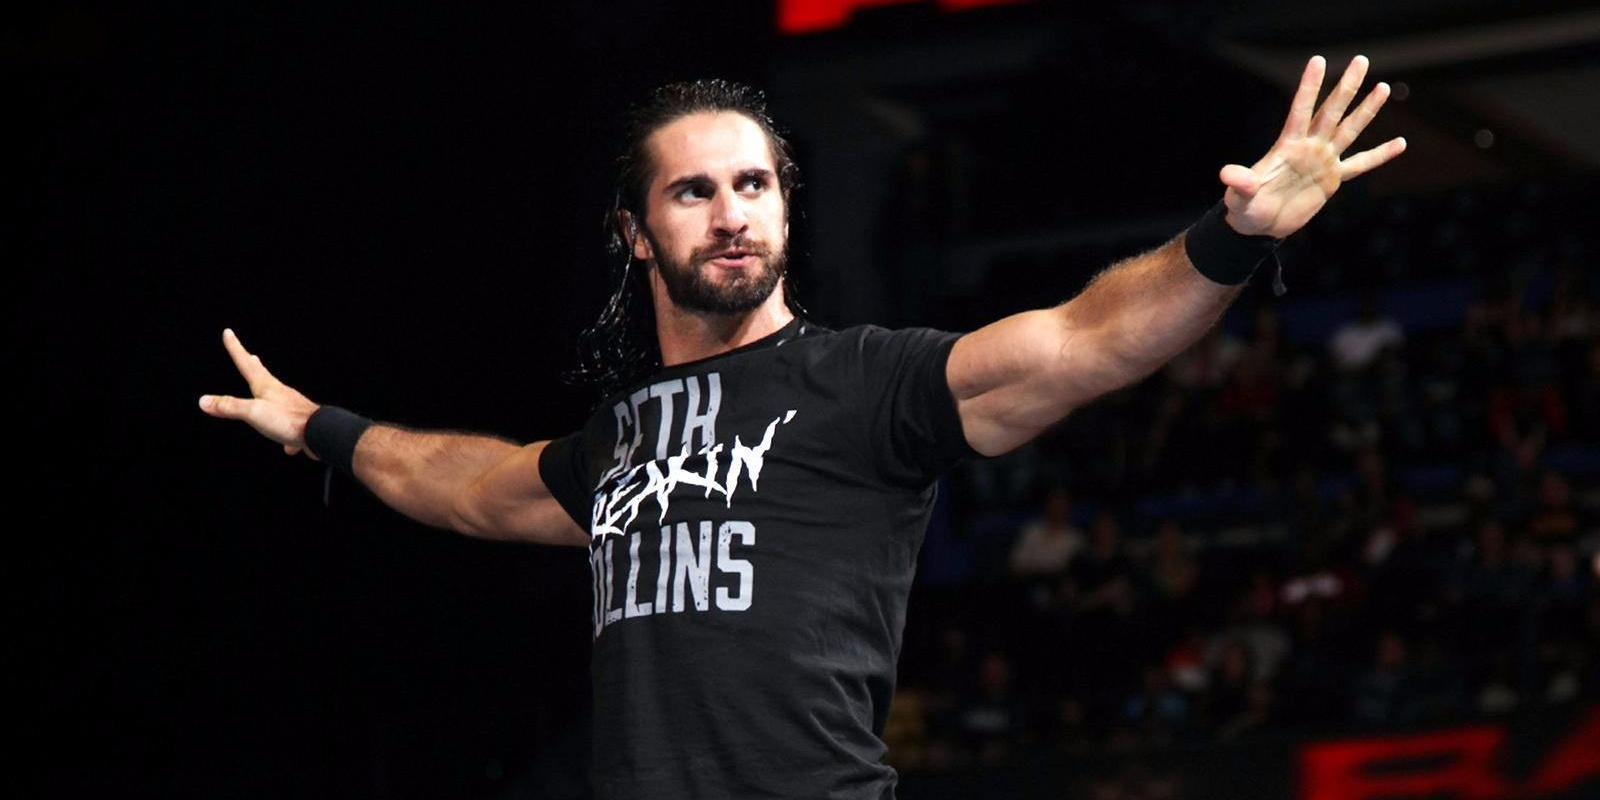 Tyler Black to Seth Rollins: the WWE Superstar describes how his themes have shaped his characters